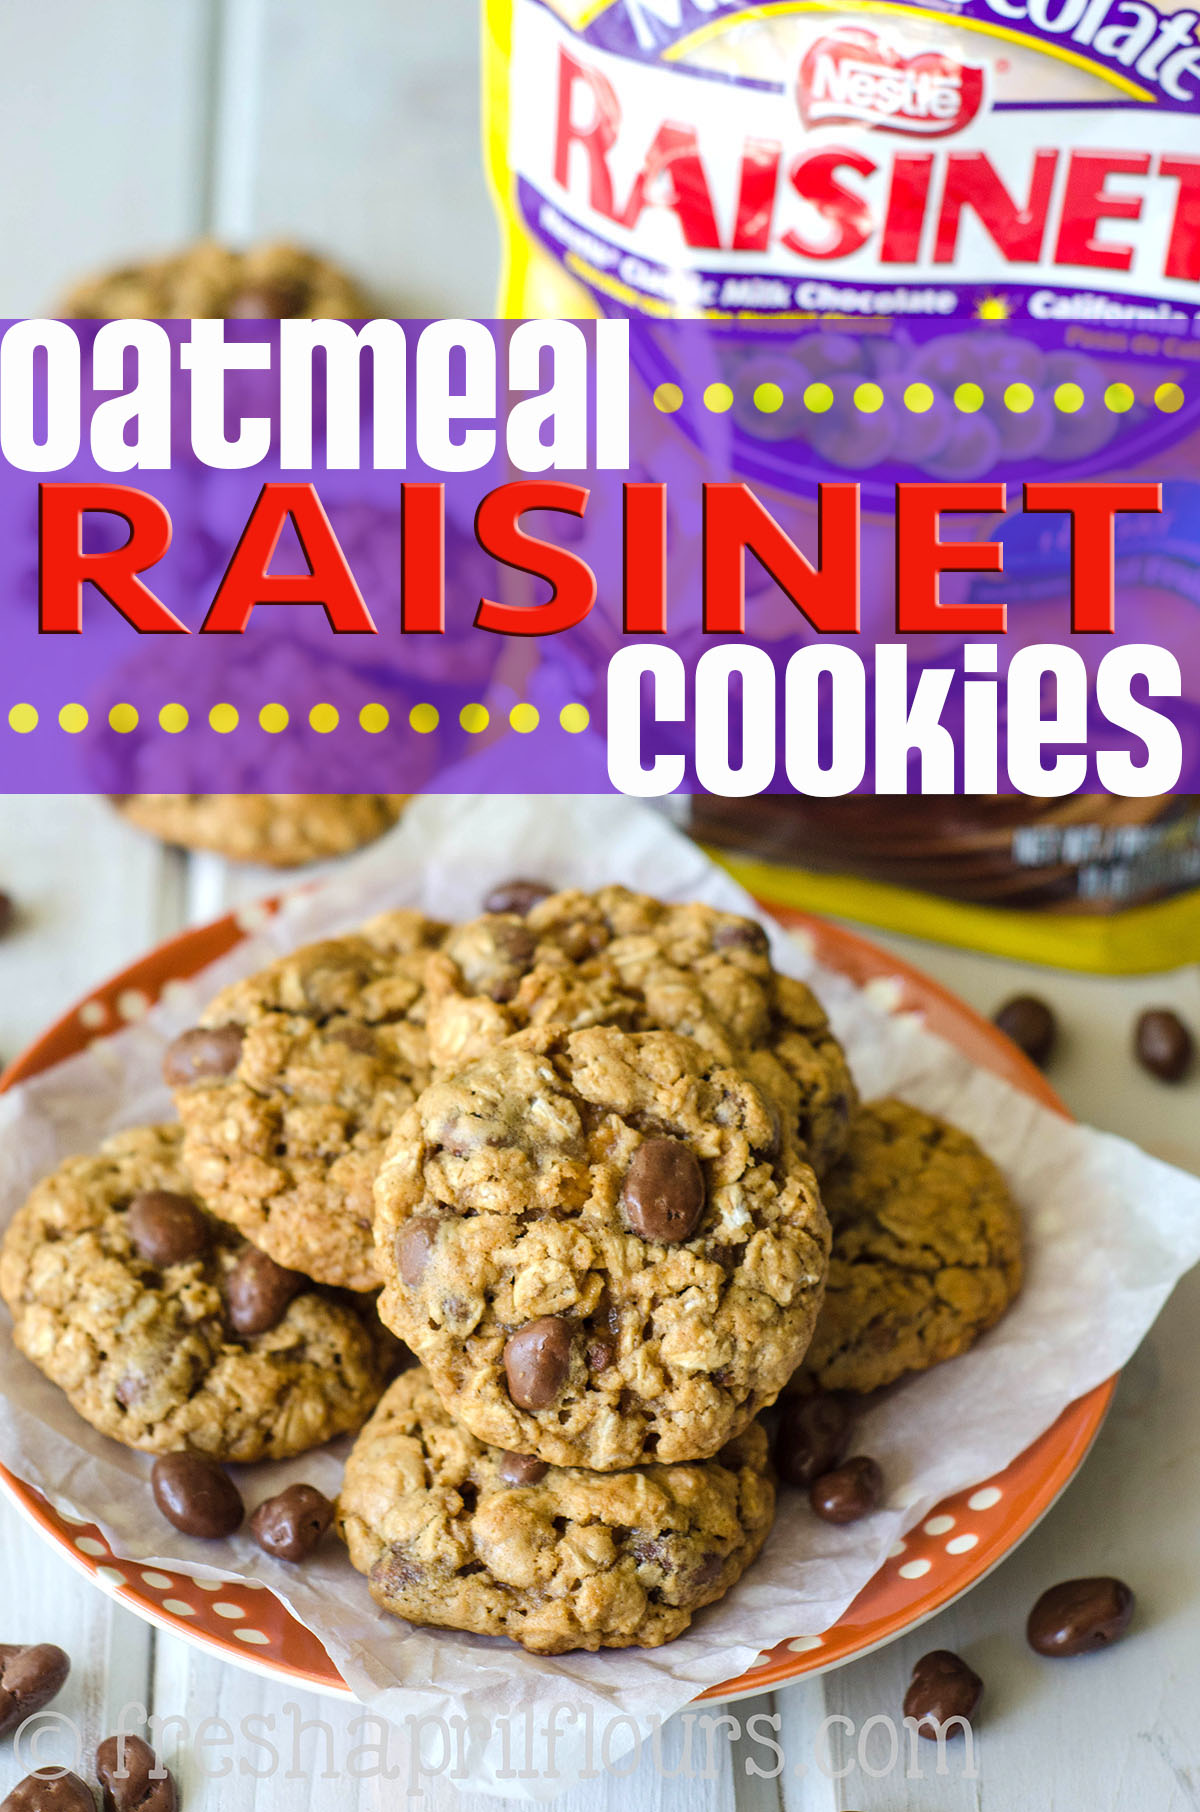 Oatmeal Raisinet Cookies: These are not your mama's oatmeal raisin cookies-- these are oatmeal Raisinet cookies! Chewy, buttery, sweetened with brown sugar and molasses, and full of chocolate covered raisins. A fun take on the classic.